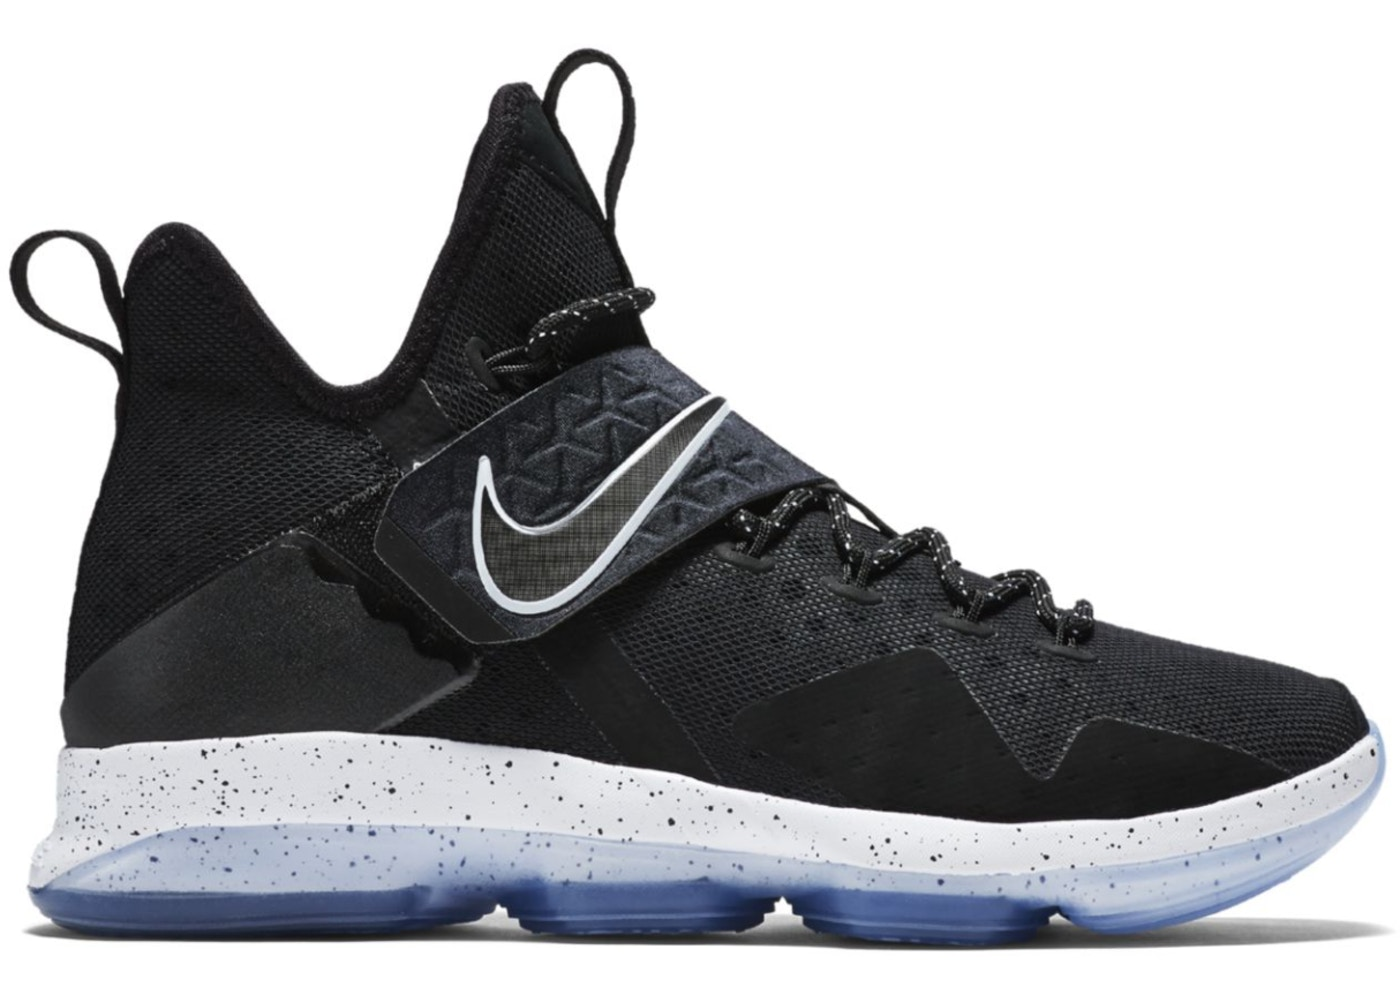 buy online 1a249 b3440 Nike LeBron 14 Shoes - Average Sale Price